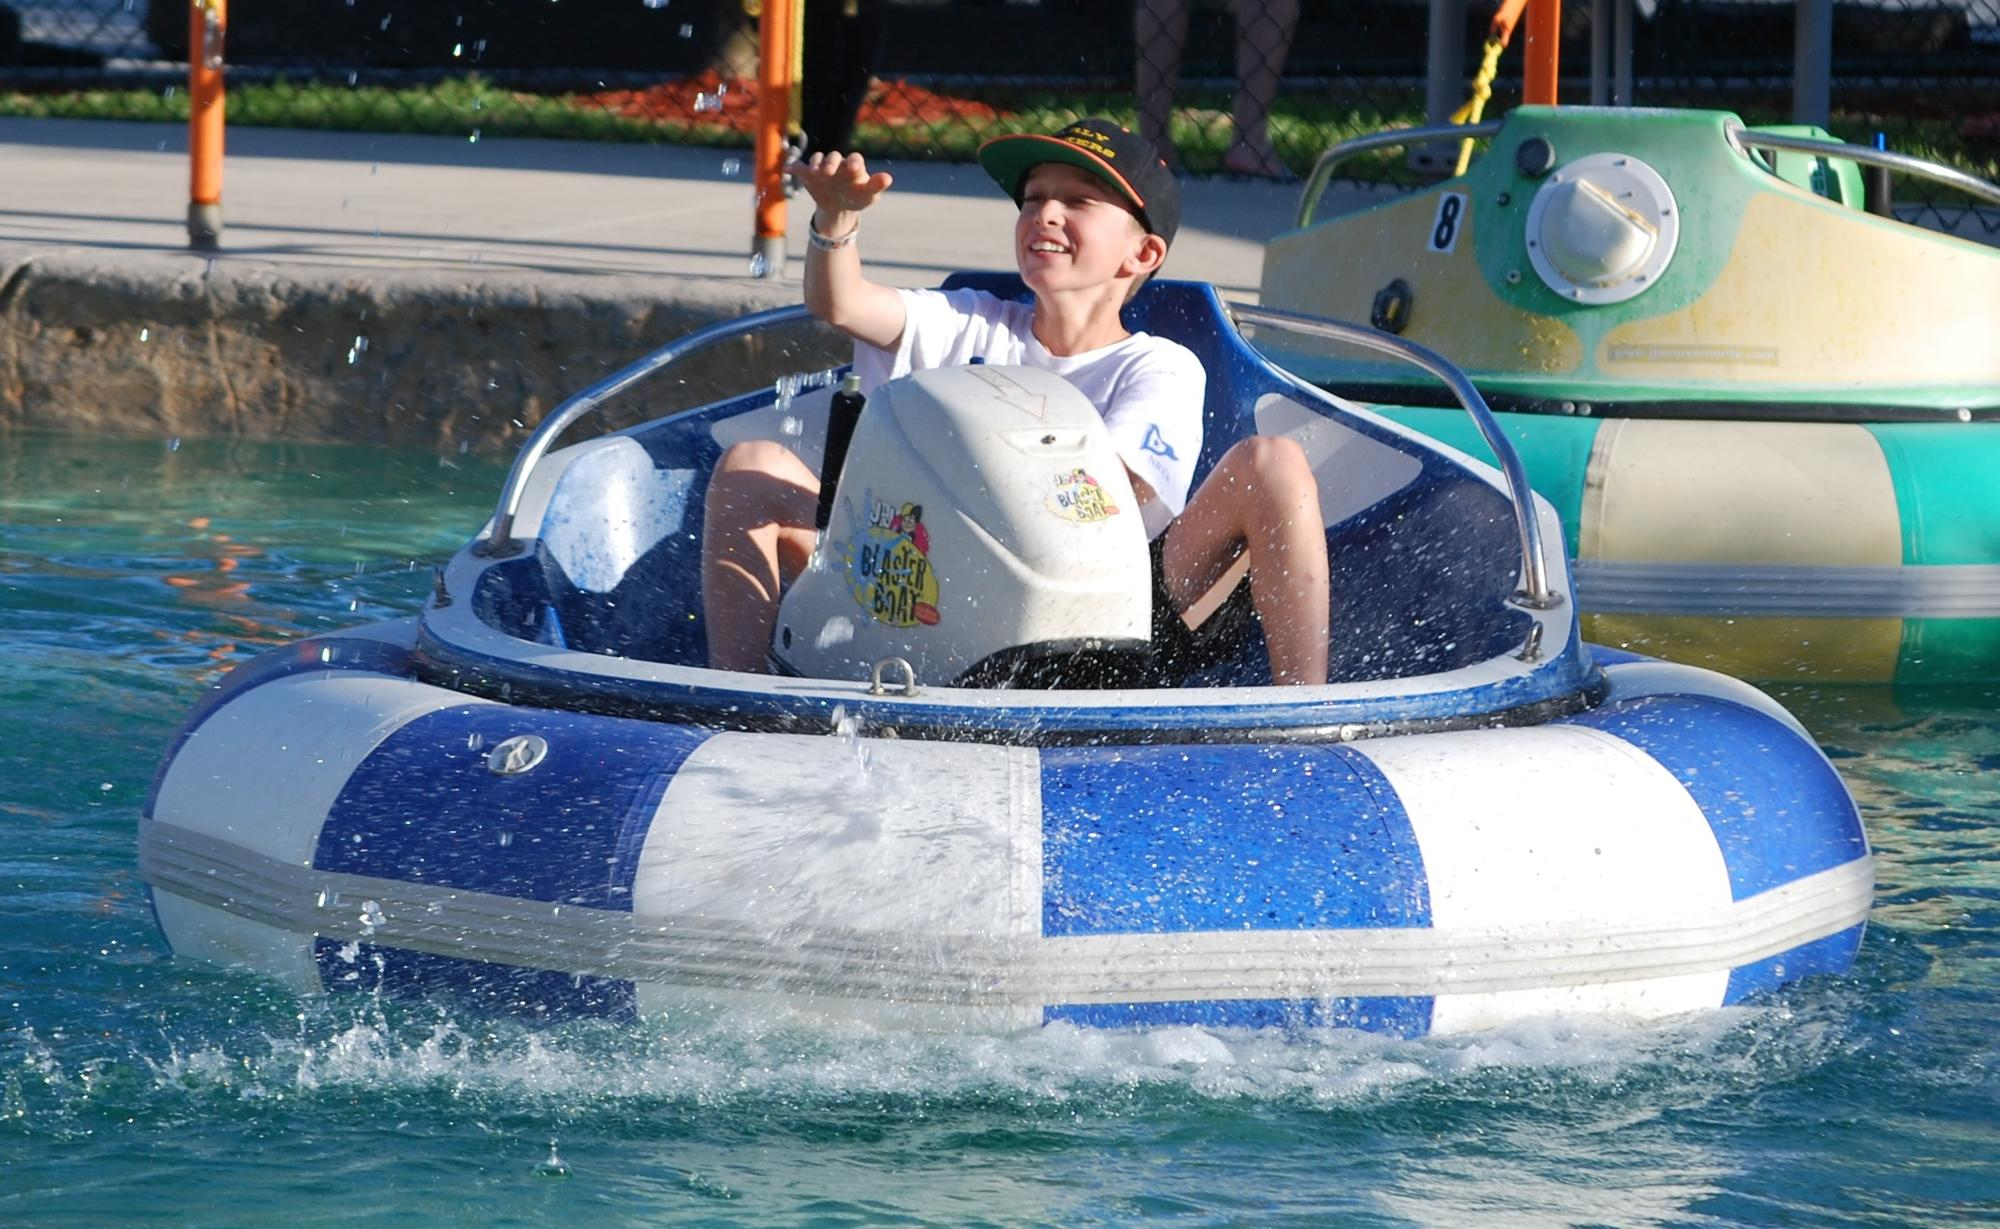 Alex enjoys piloting a bumper boat